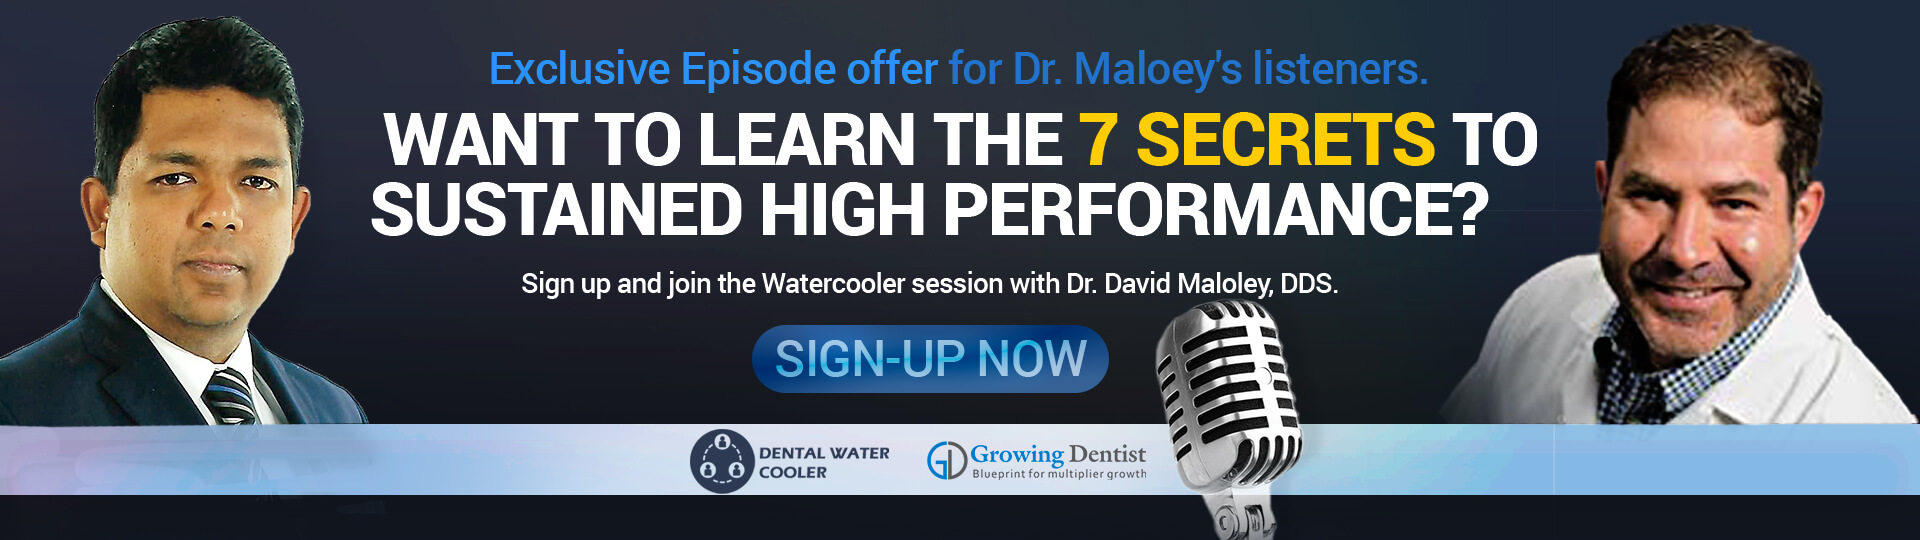 Dr David Maloley Dental Watercooler